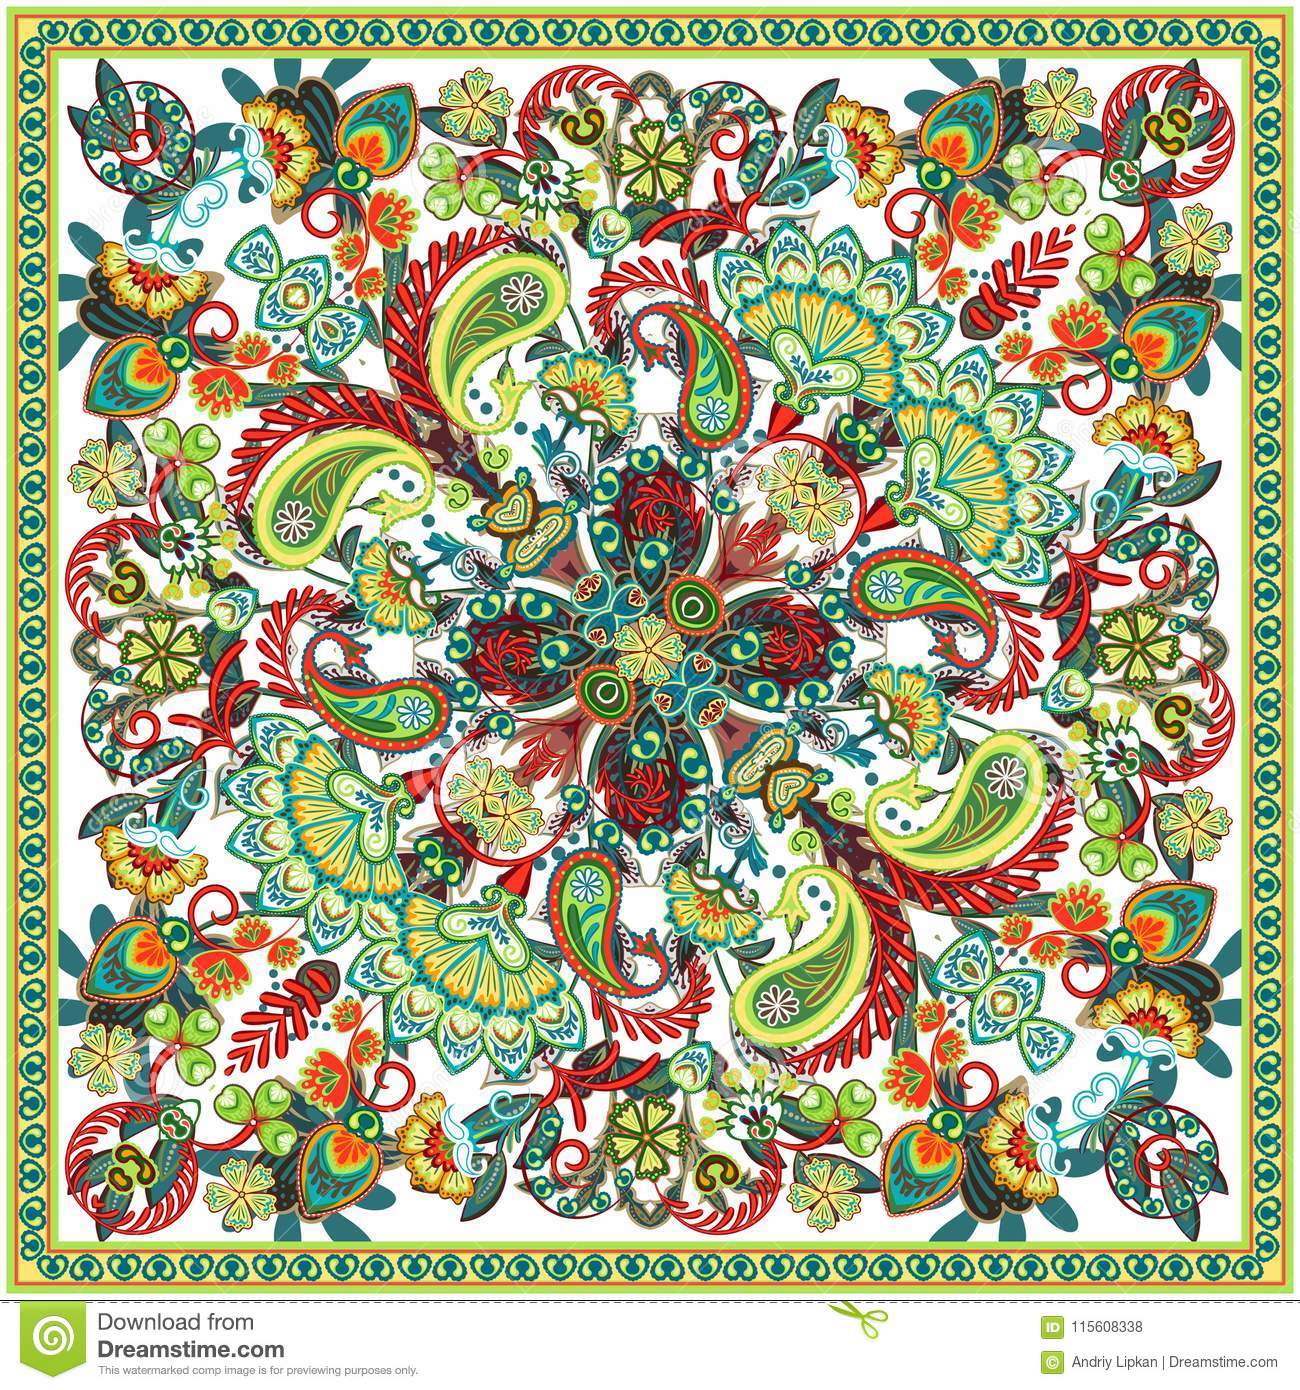 a1b0ae4b1f Vector Ornament Paisley Bandana Print, Silk Neck Scarf Or Kerchief ...